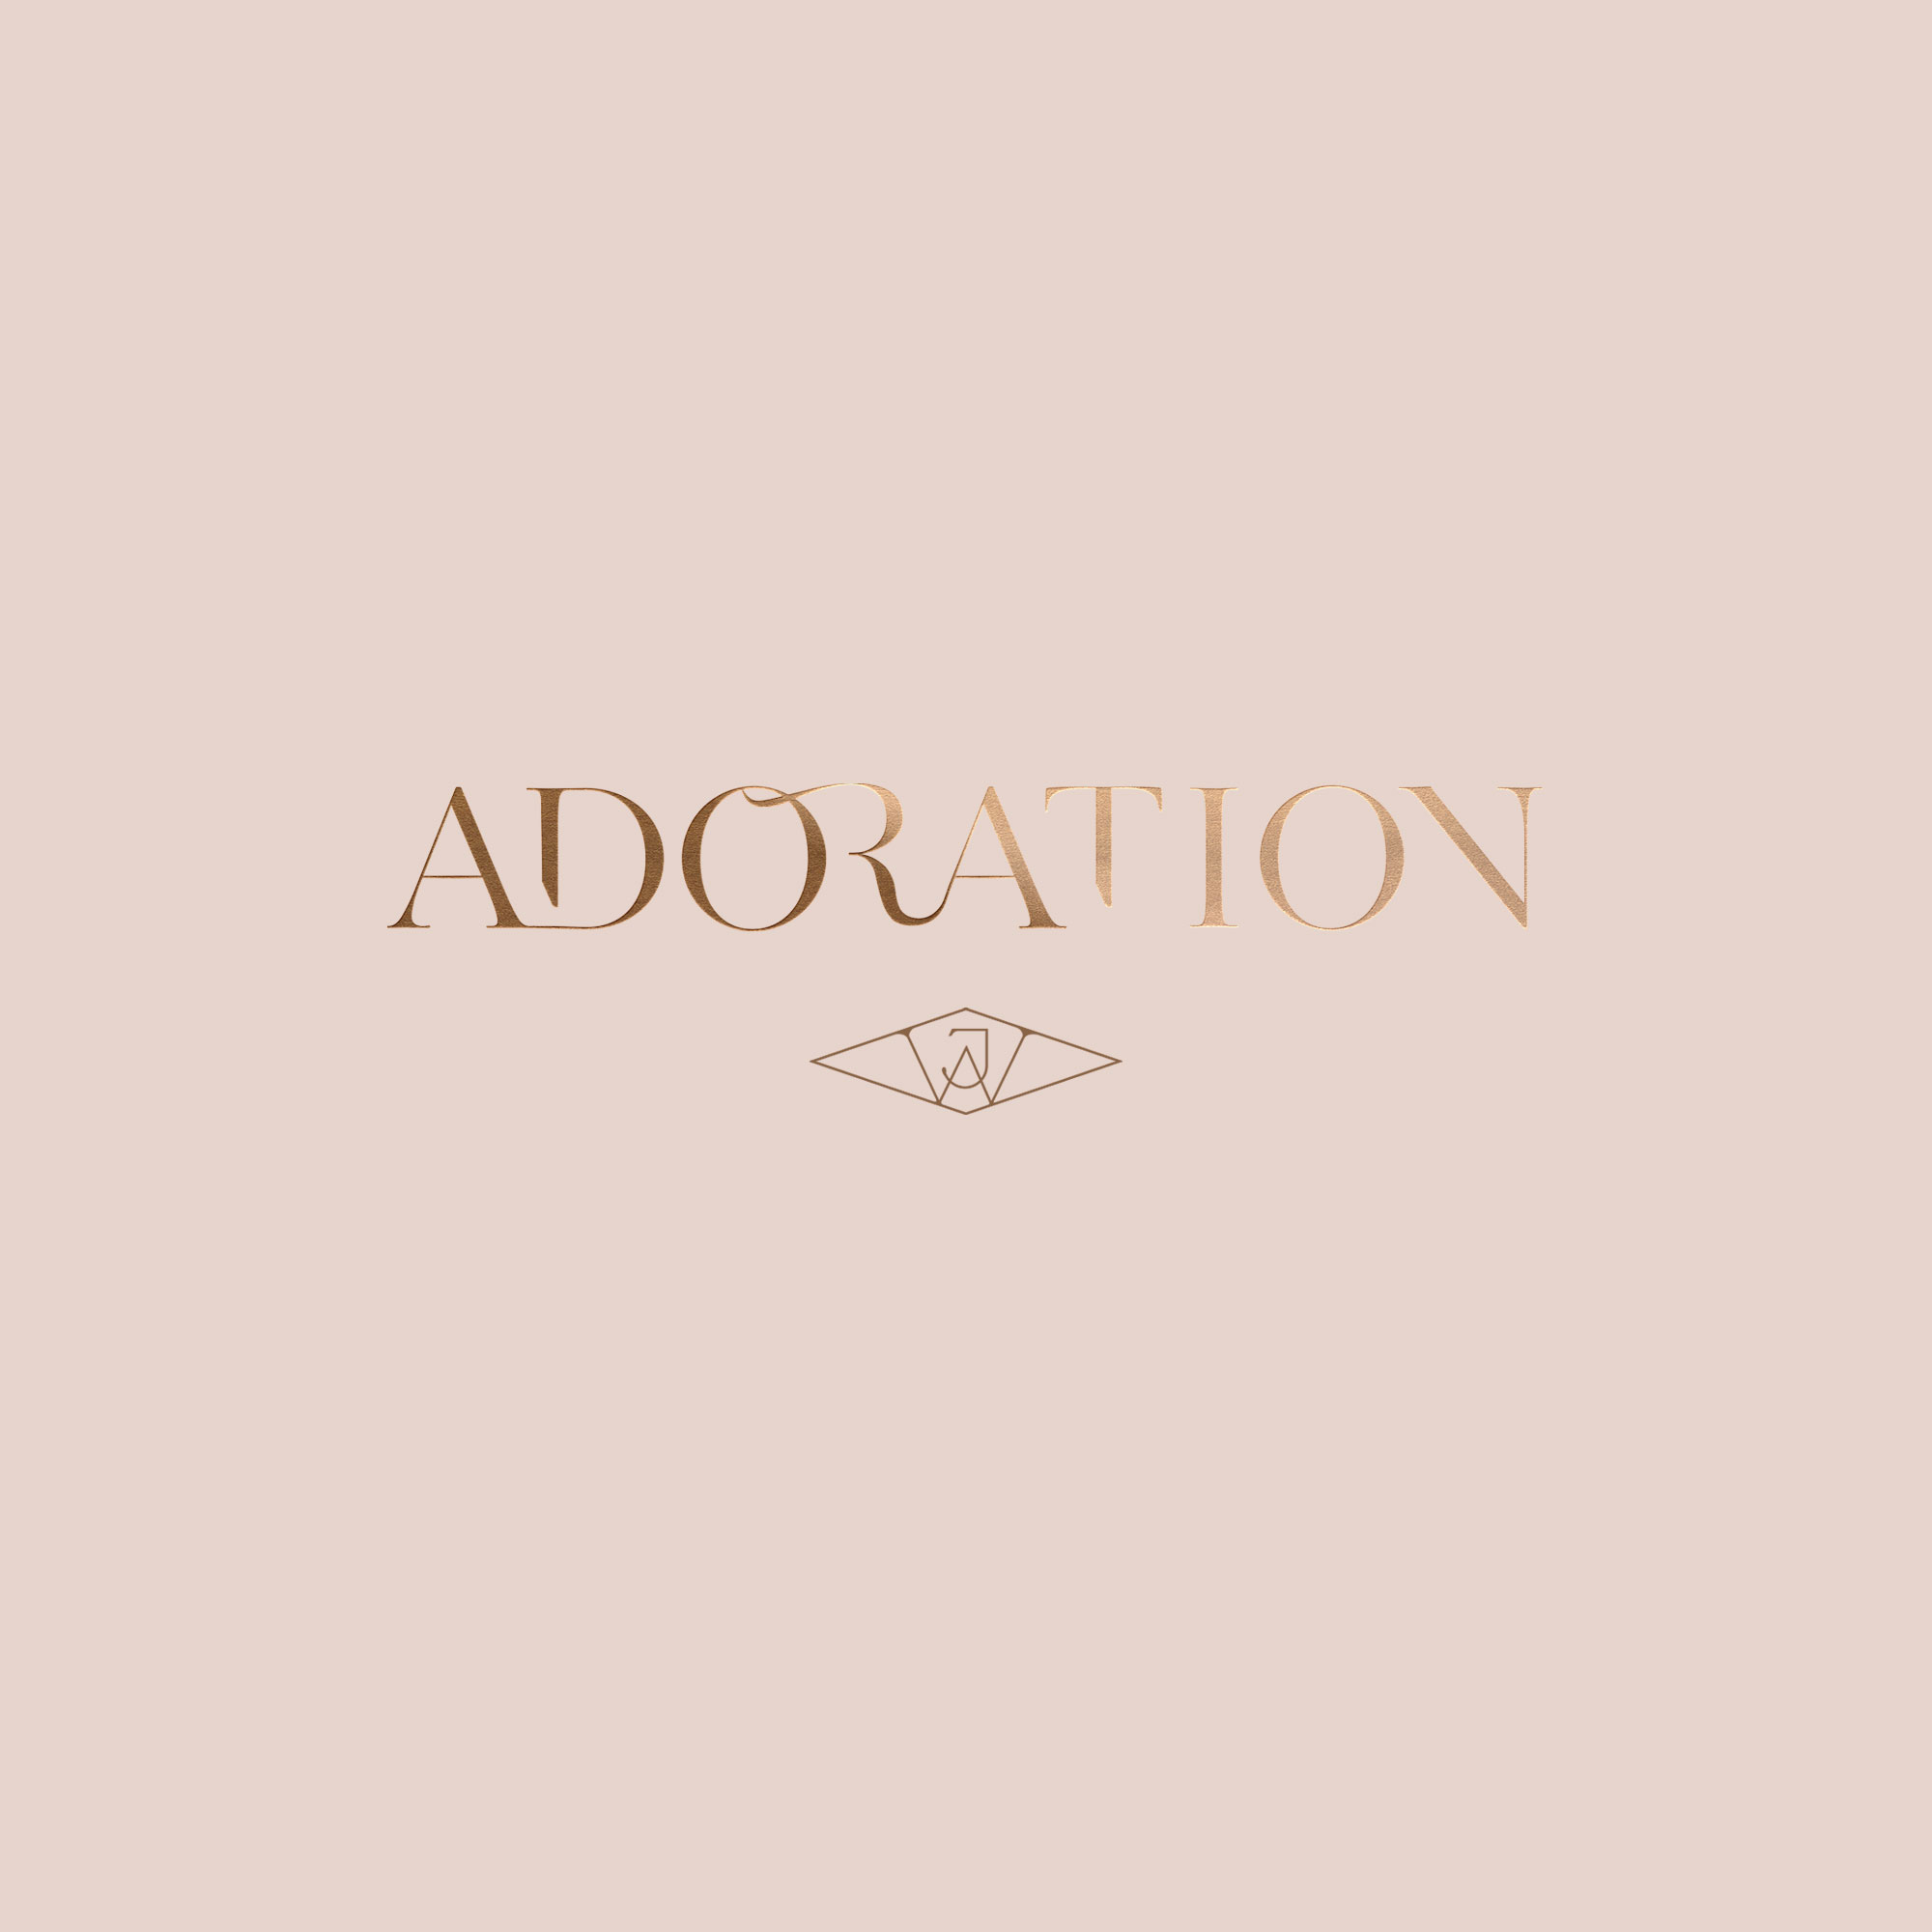 ADORATION-logo-loolaa-designs.png